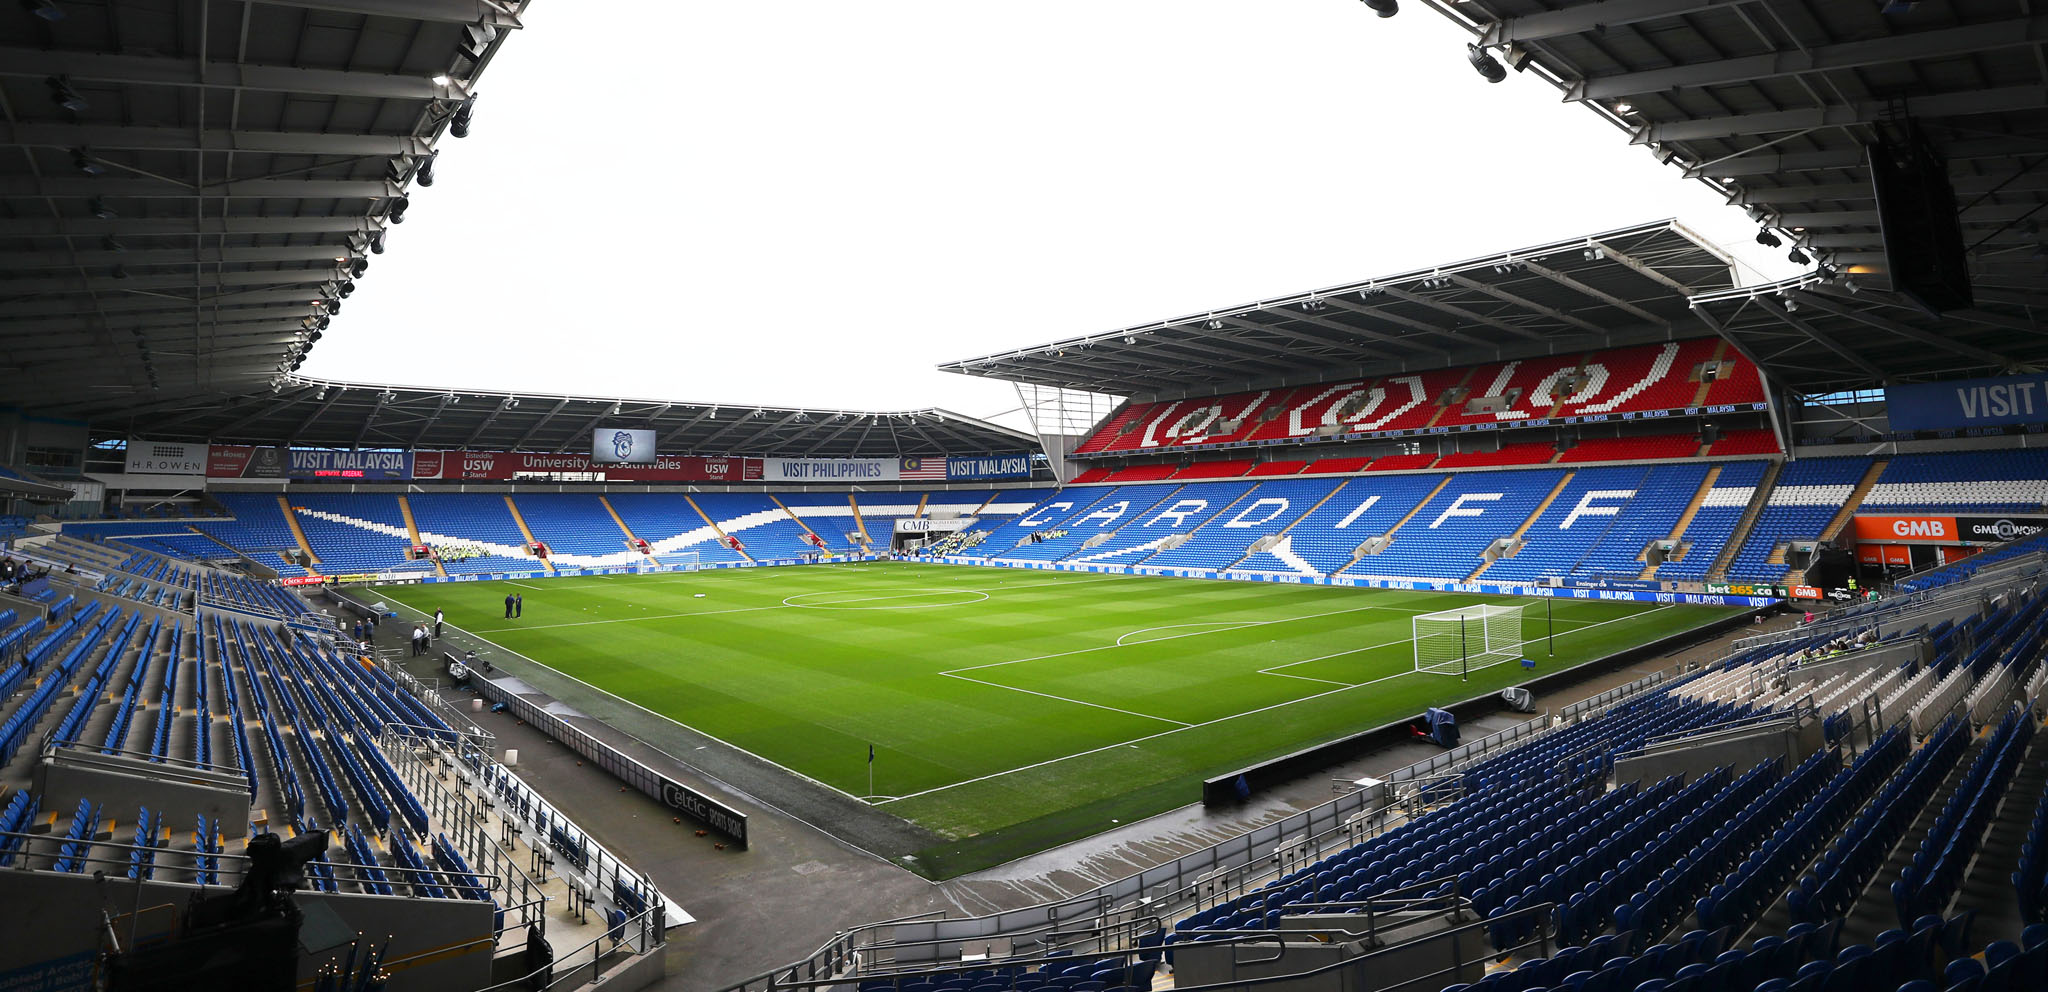 Cardiff city vs newcastle united 28 04 2017 football ticket net - Cardiff city ticket office number ...